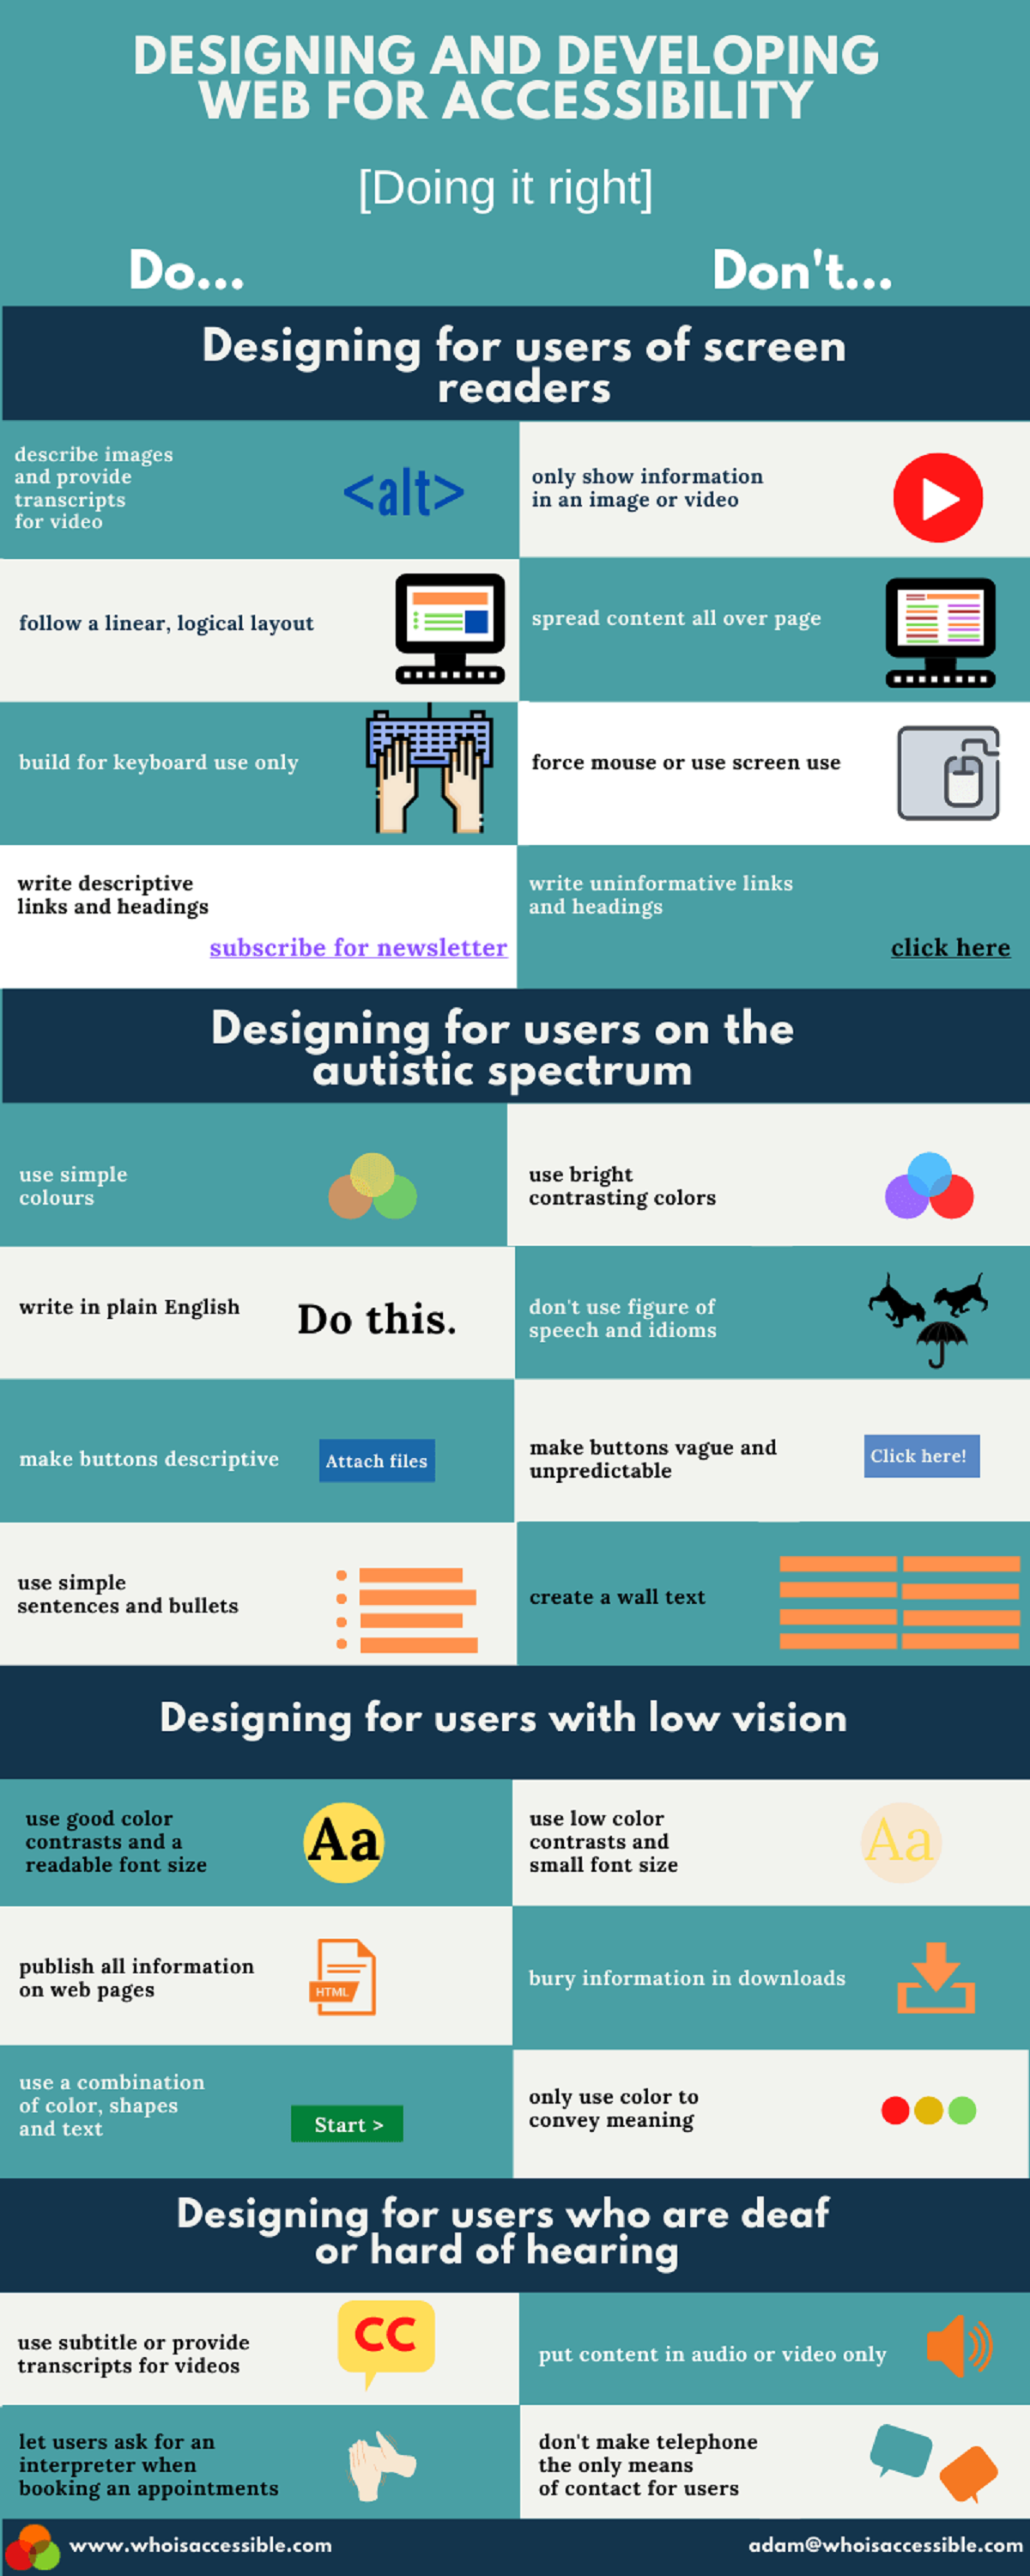 accessible-web-design-development-doing-it-right-infographic